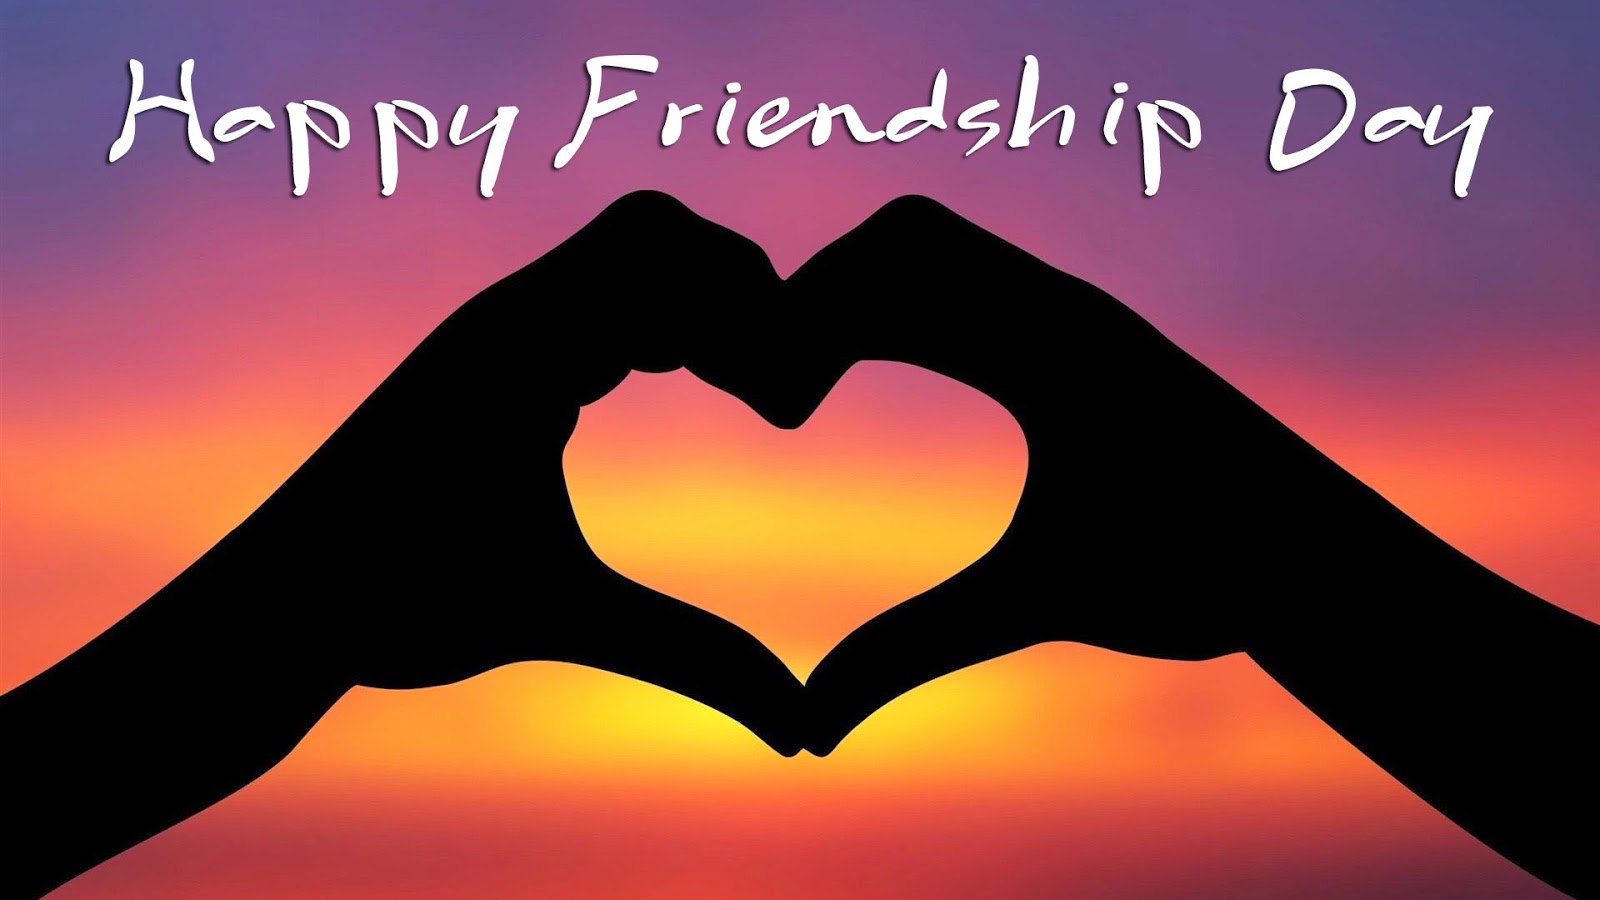 Friendship Day 2017 Wallpapers